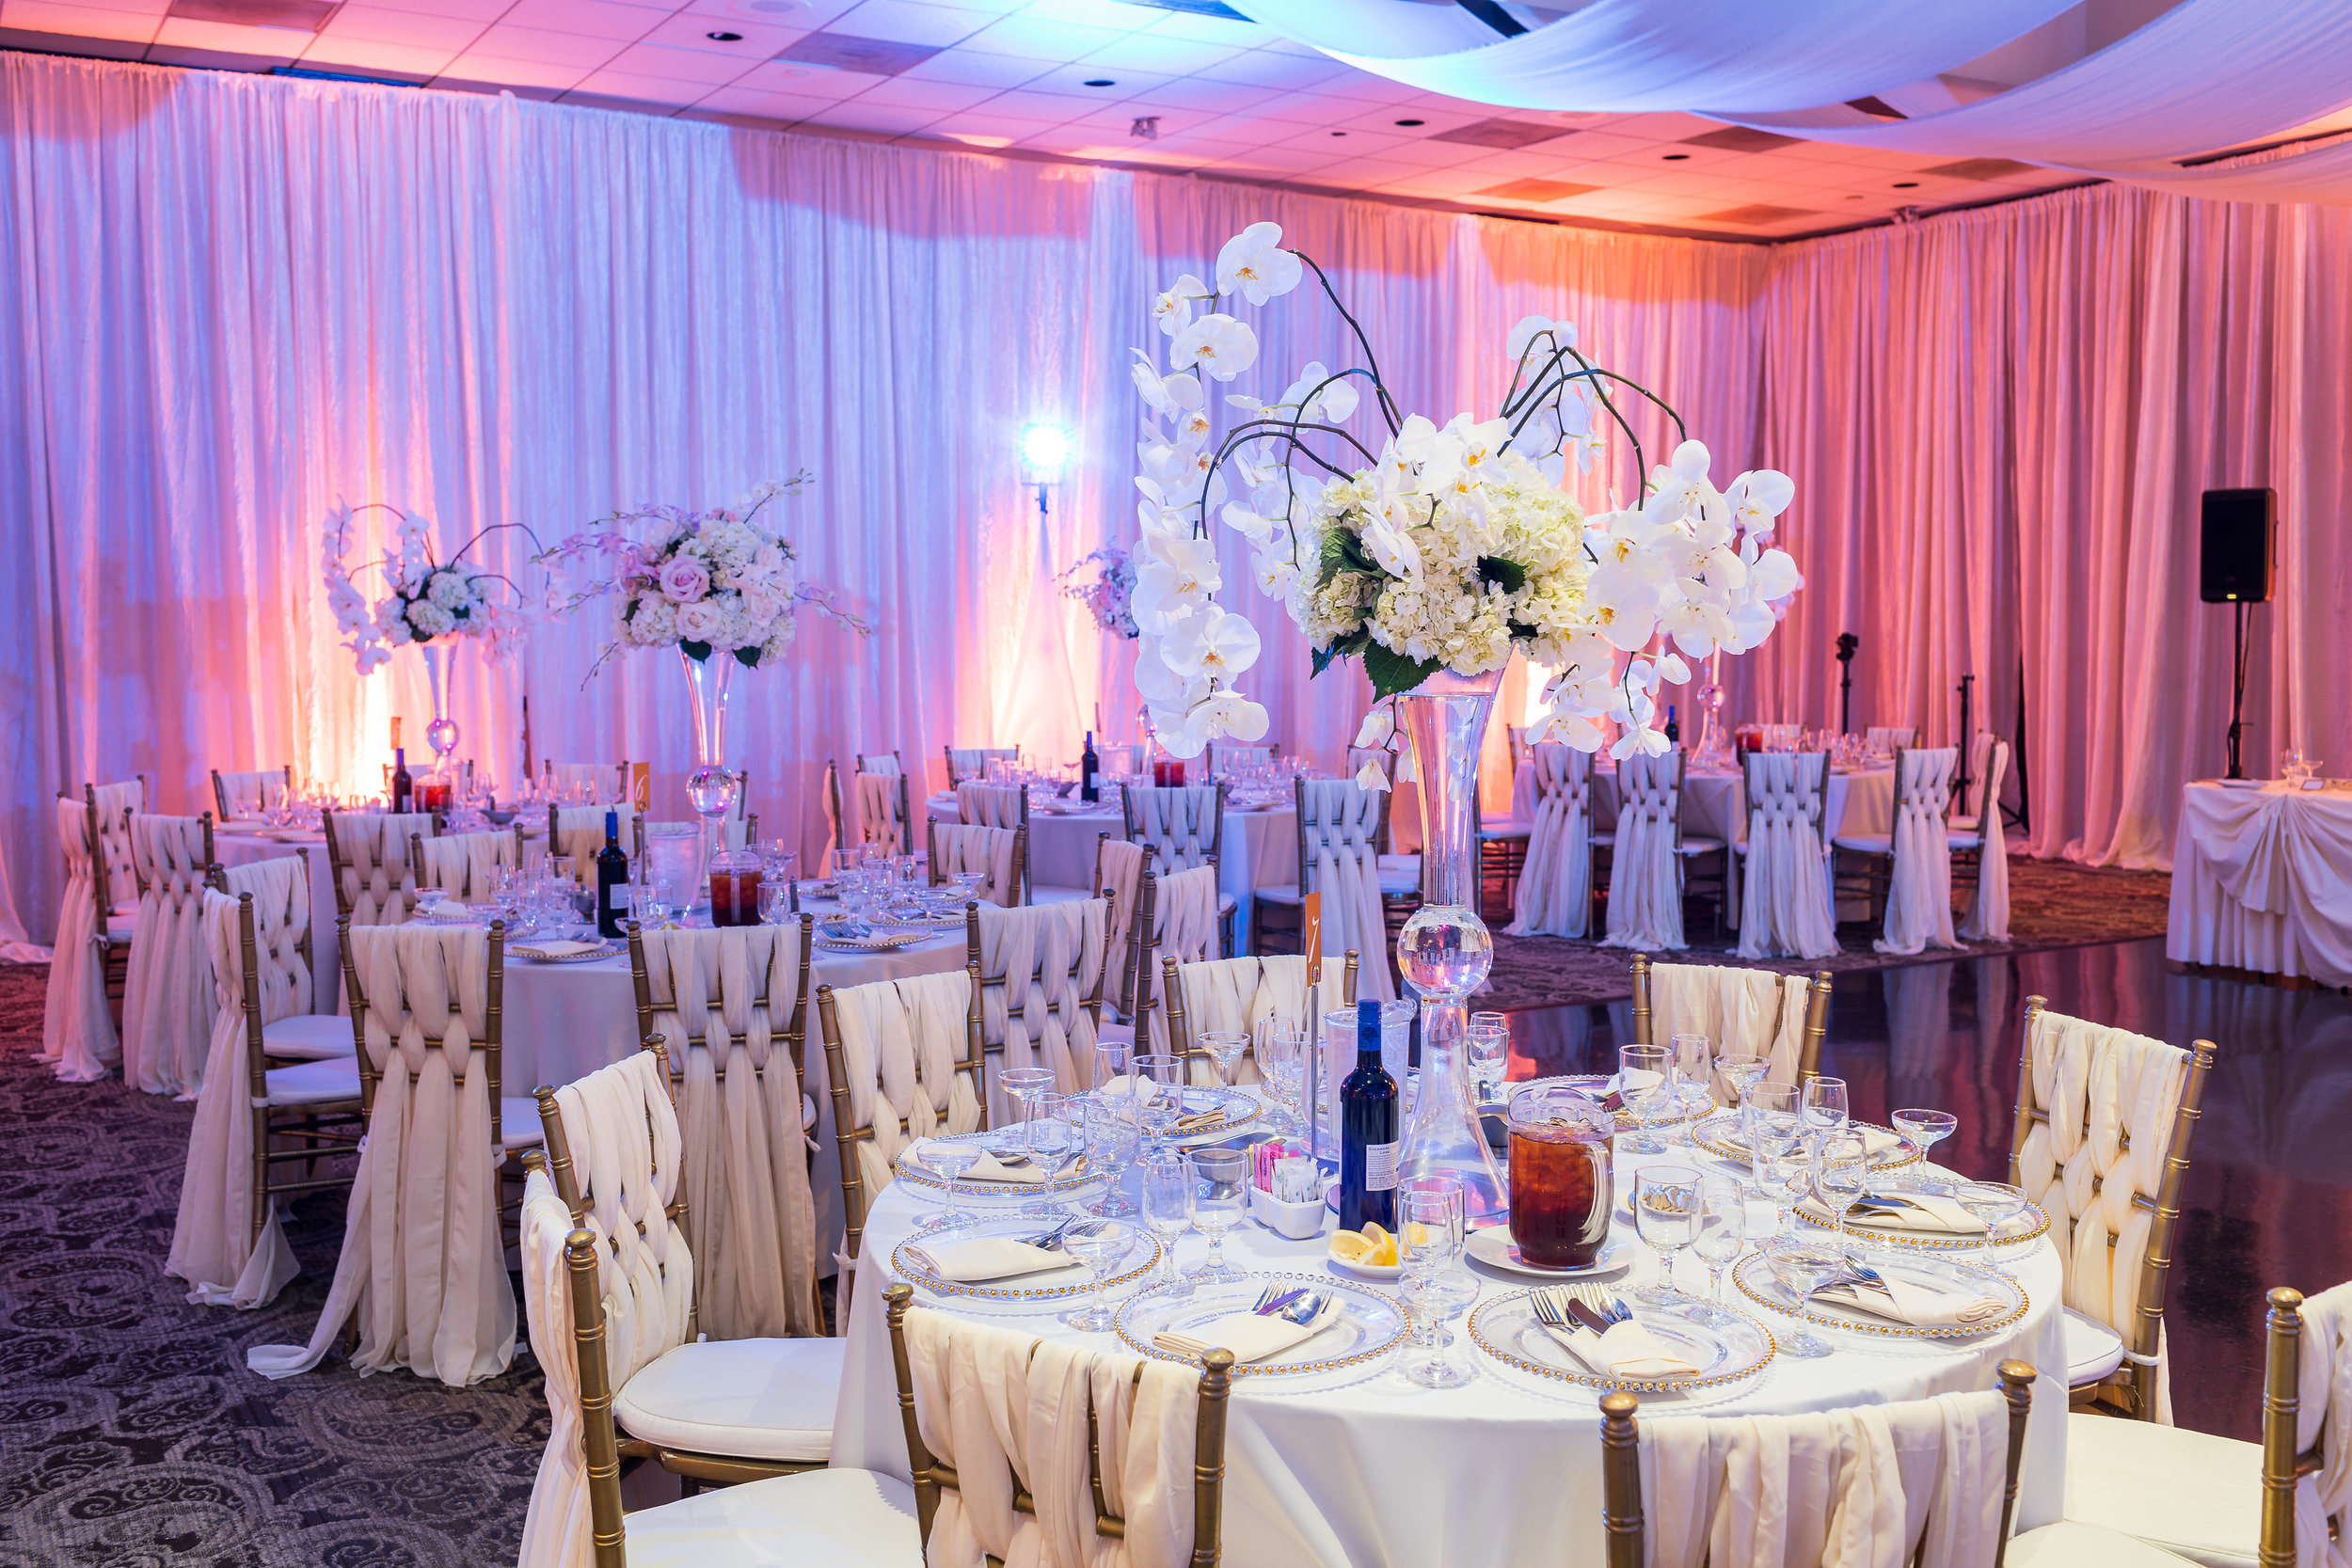 ! Glamorous Romantic Wedding Reception with White Drapery.jpg